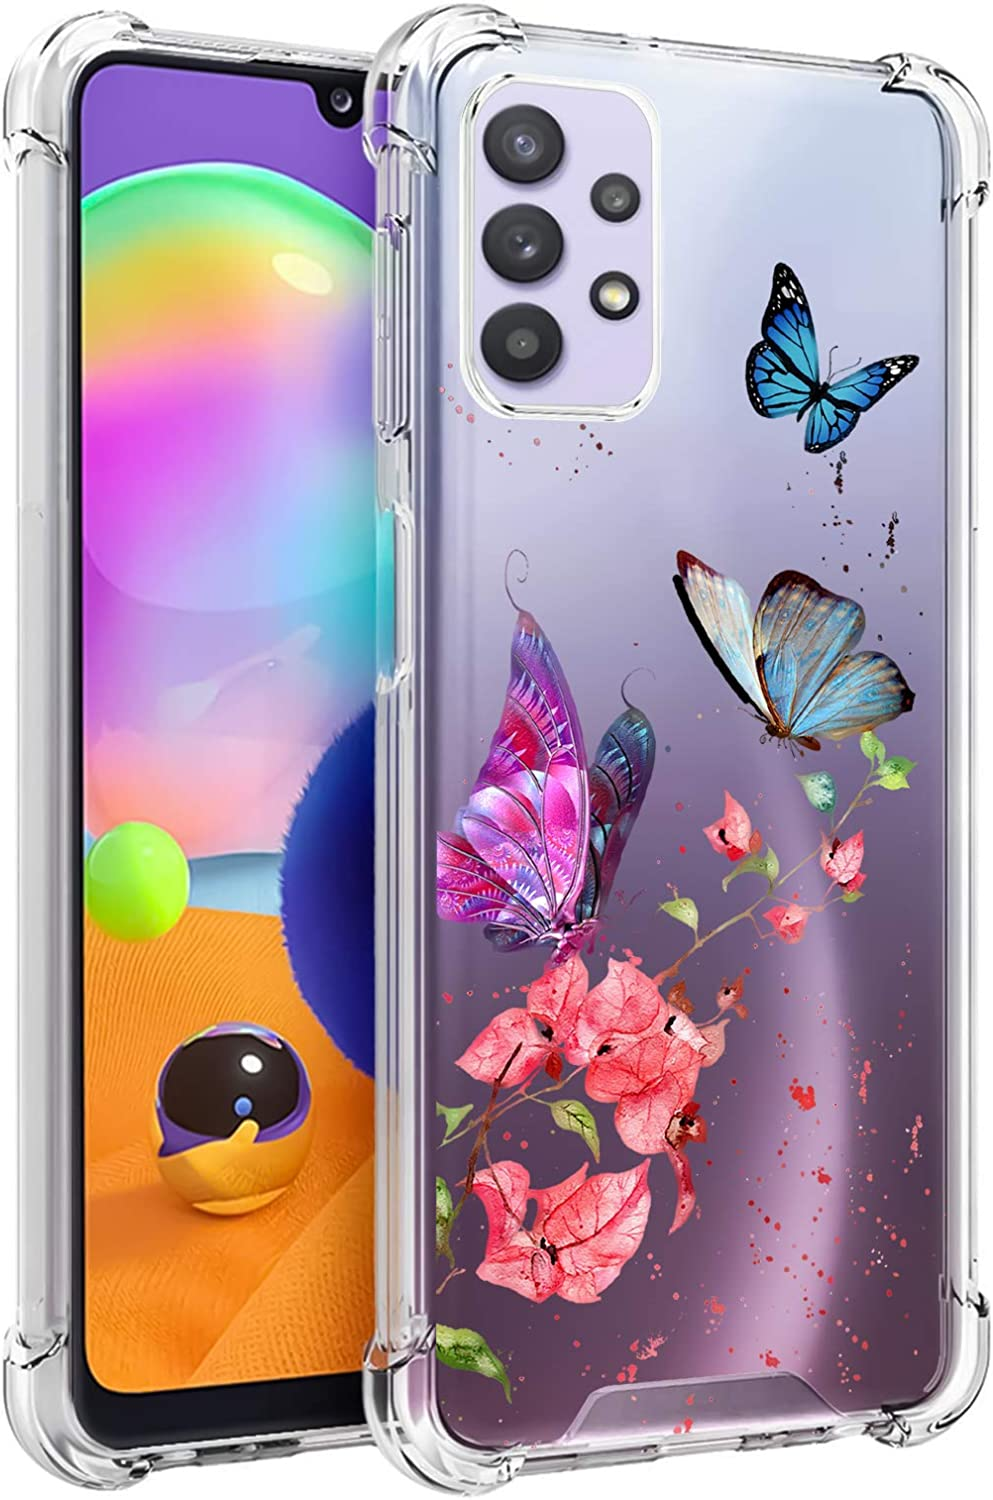 LSL Samsung Galaxy A32 5G Clear Case Butterflies and Flowers Floral Cute Design Pattern Hard PC Back + Soft TPU Edges Full Body Protection Wireless Charging Cover for Galaxy A32 5G 6.5 Inch